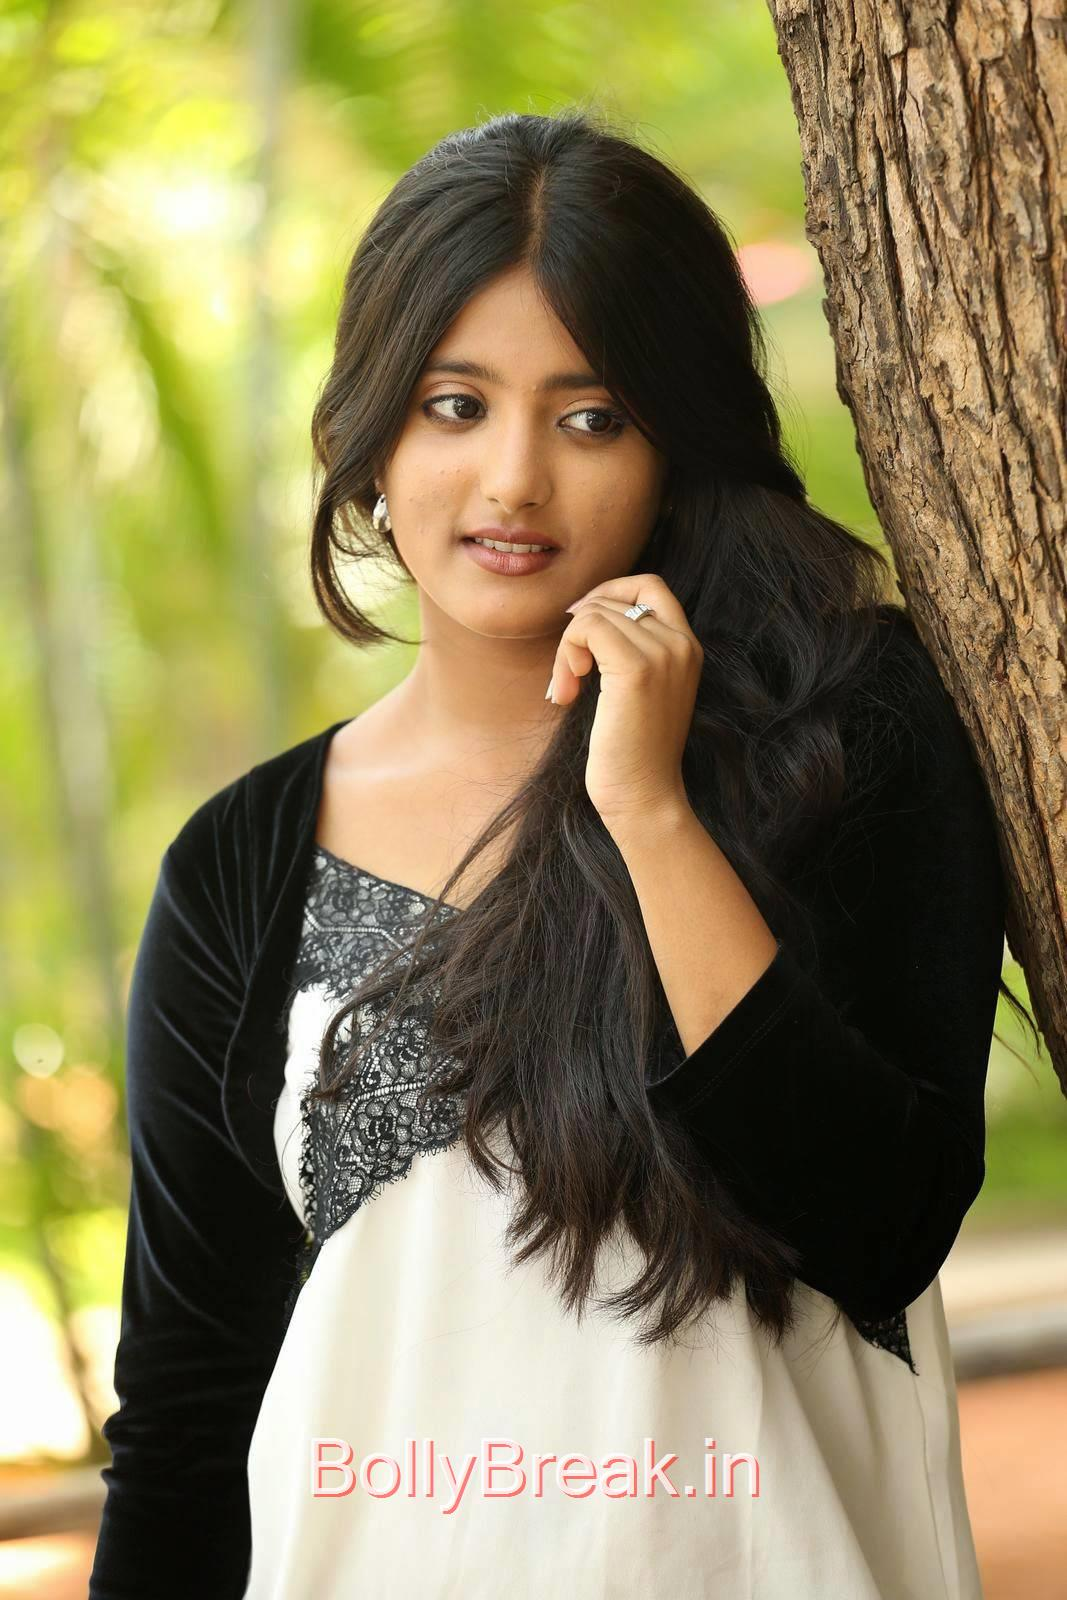 Tollywood Actress Ulka Gupta, Cute, Sweet, Innocent Indian Actress Ulka Gupta hot HD Photo Gallery Pics